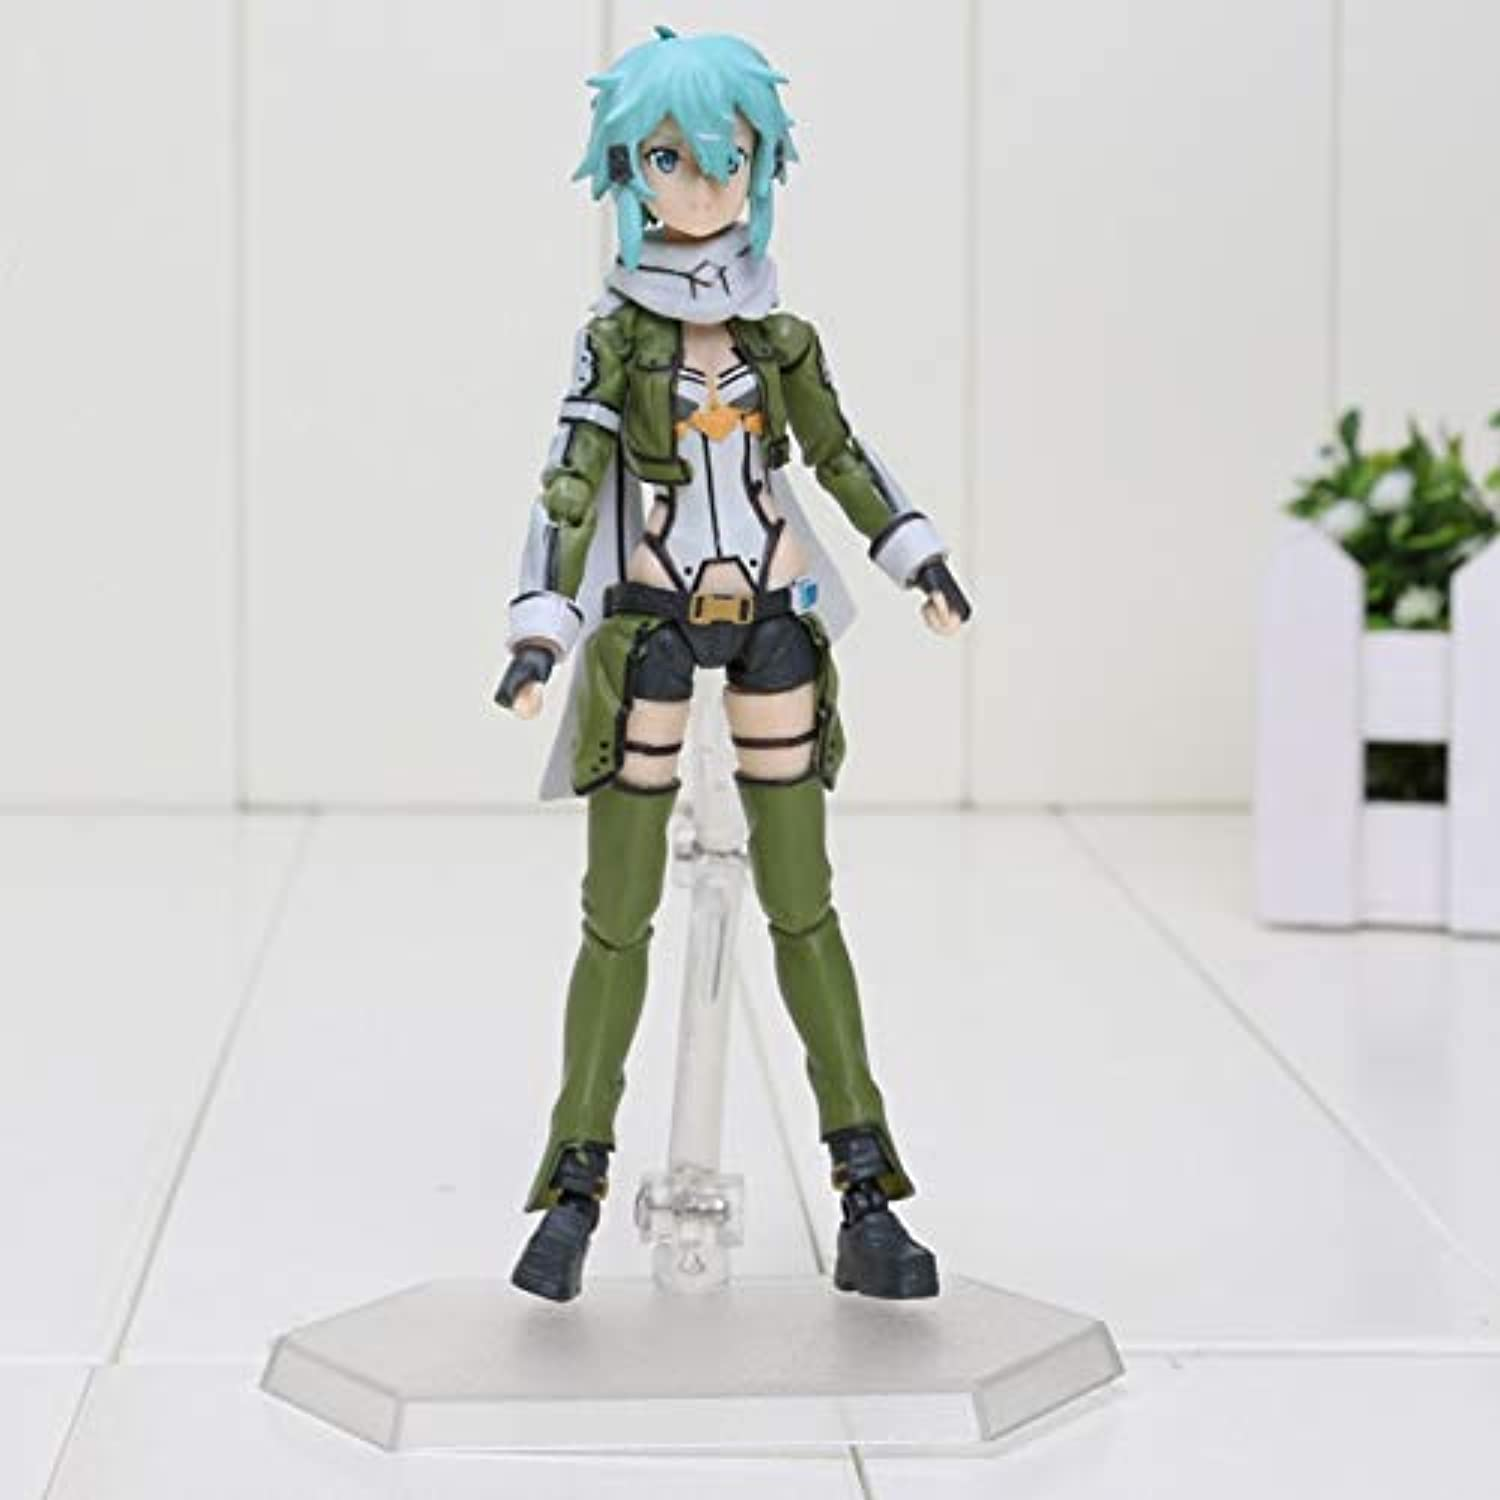 Allegro Huyer Anime Sword Art Online ii Figure 3 Gun Gale Online ggo Asada Shino Sinon Figure Toys PVC Action Figure Collectible Toy(figma in Box)